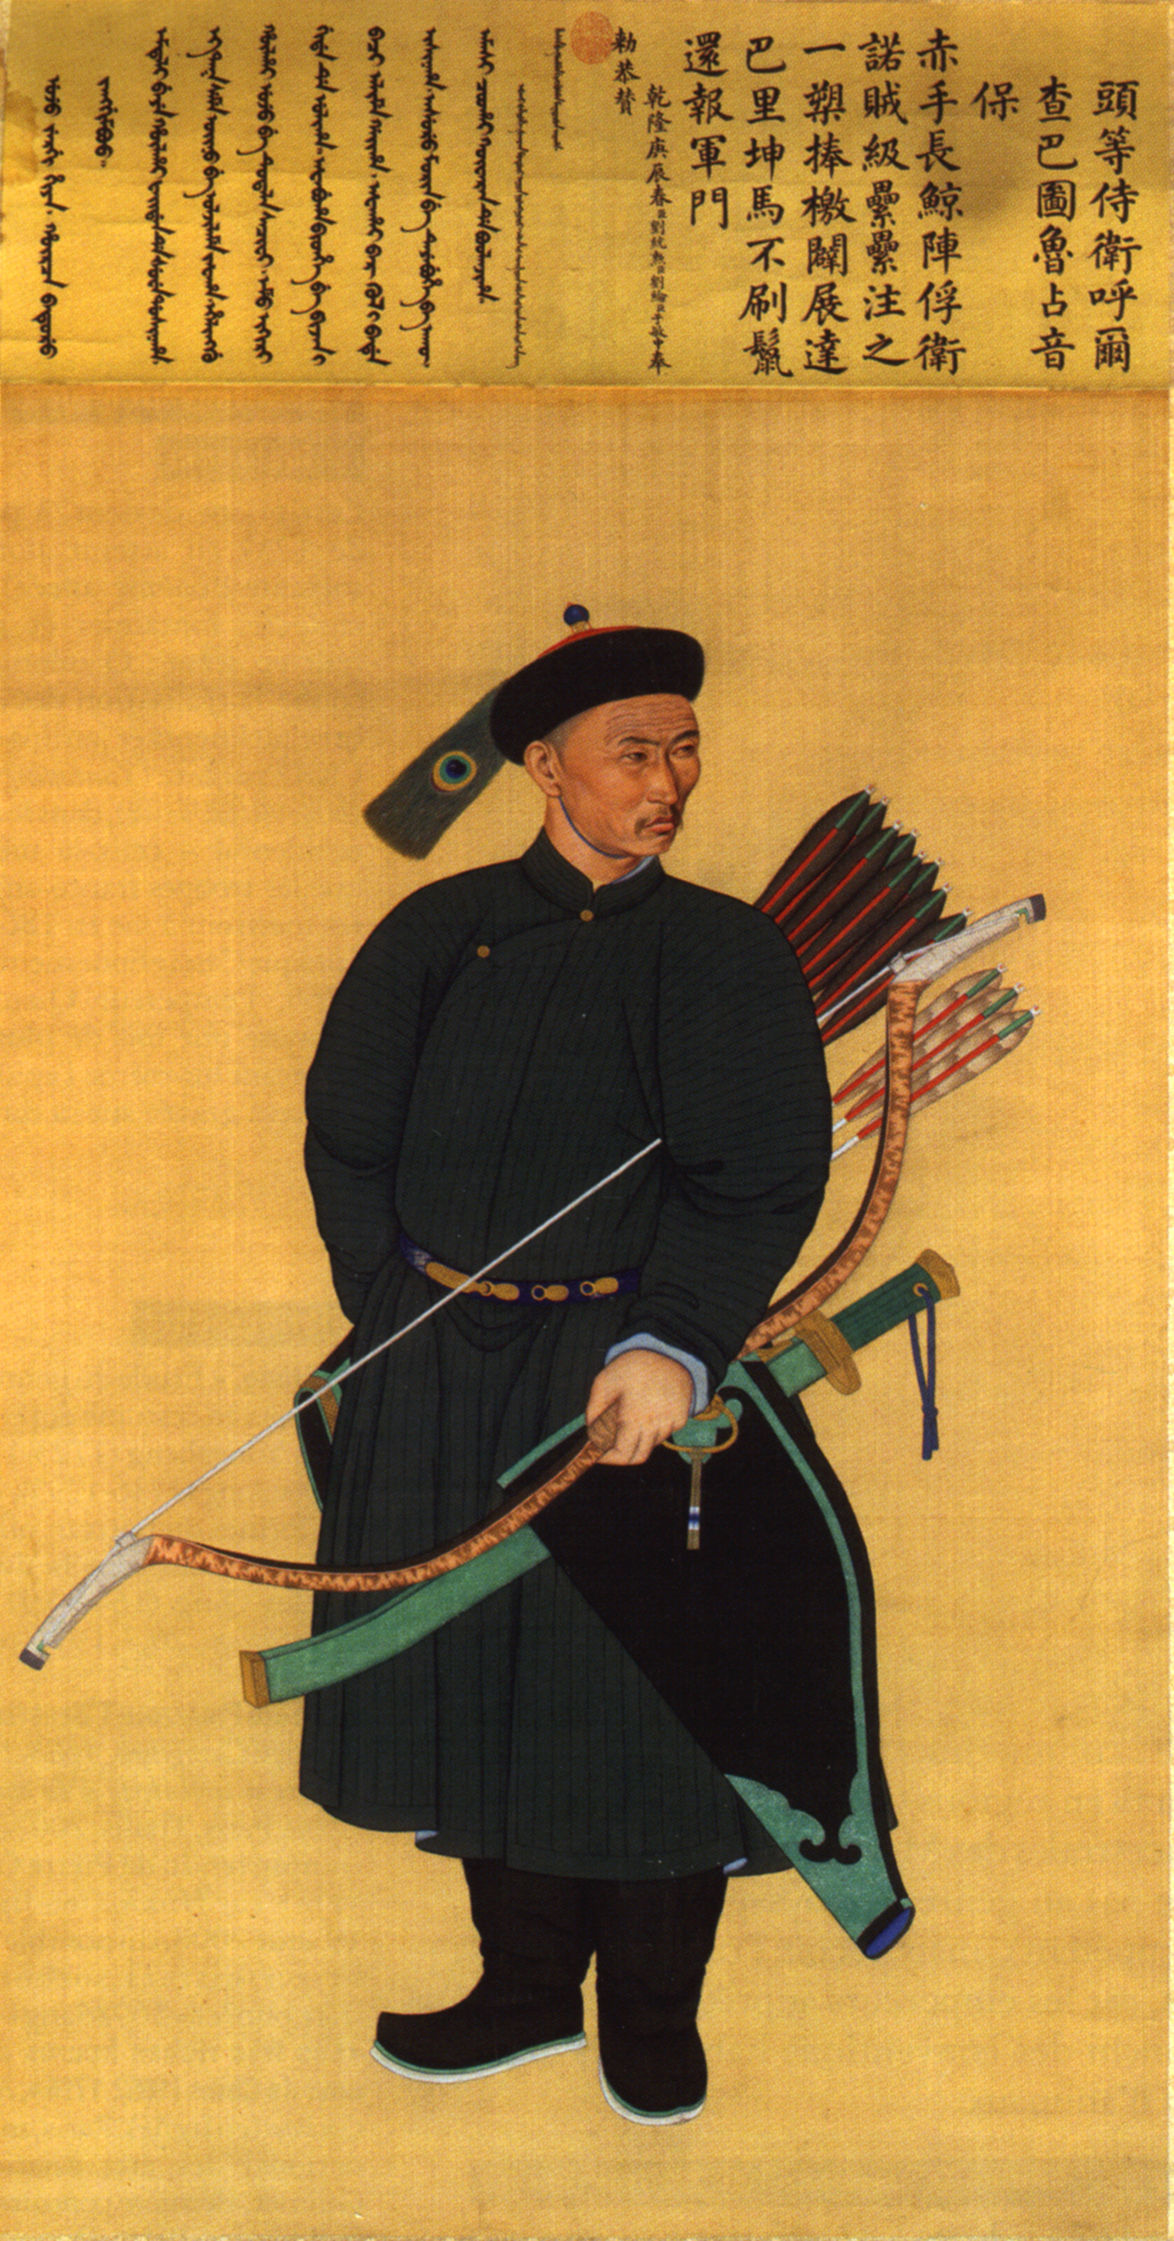 Depiction of Arco mongol